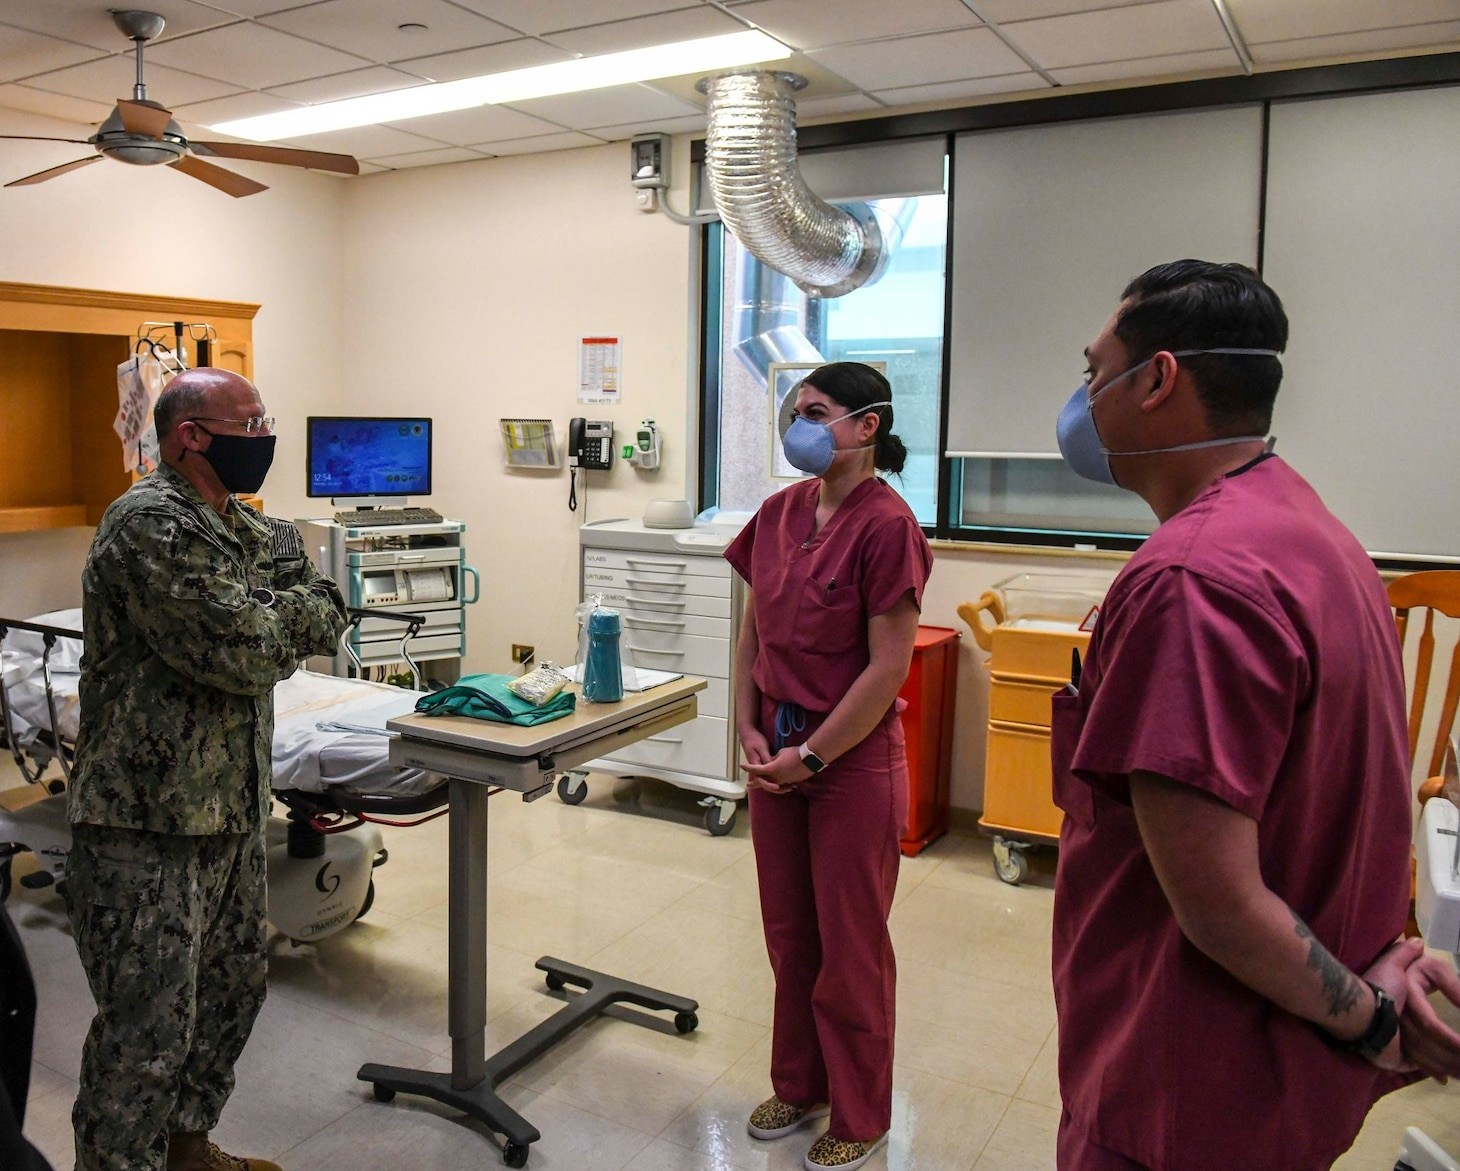 Adm. Mike Gilday, Chief of Naval Operations, left, speaks with Corpsmen assigned to the Multi Service Ward at U.S. Naval Hospital Naples, Italy, about negative-pressure rooms used to treat potential coronavirus (COVID-19) patients at the hospital, Jan. 11, 2021. USNH Naples, the largest naval hospital in Europe, serves a diverse population of over 9,800 beneficiaries. Over 500 staff members at the main hospital, branch health clinic, and Navy Liaison Detachment in Landstuhl, Germany work tirelessly to keep warfighters in the fight and provide care for their families. (U.S. Navy photo by Mass Communication Specialist 3rd Class Trey Fowler/ Released)